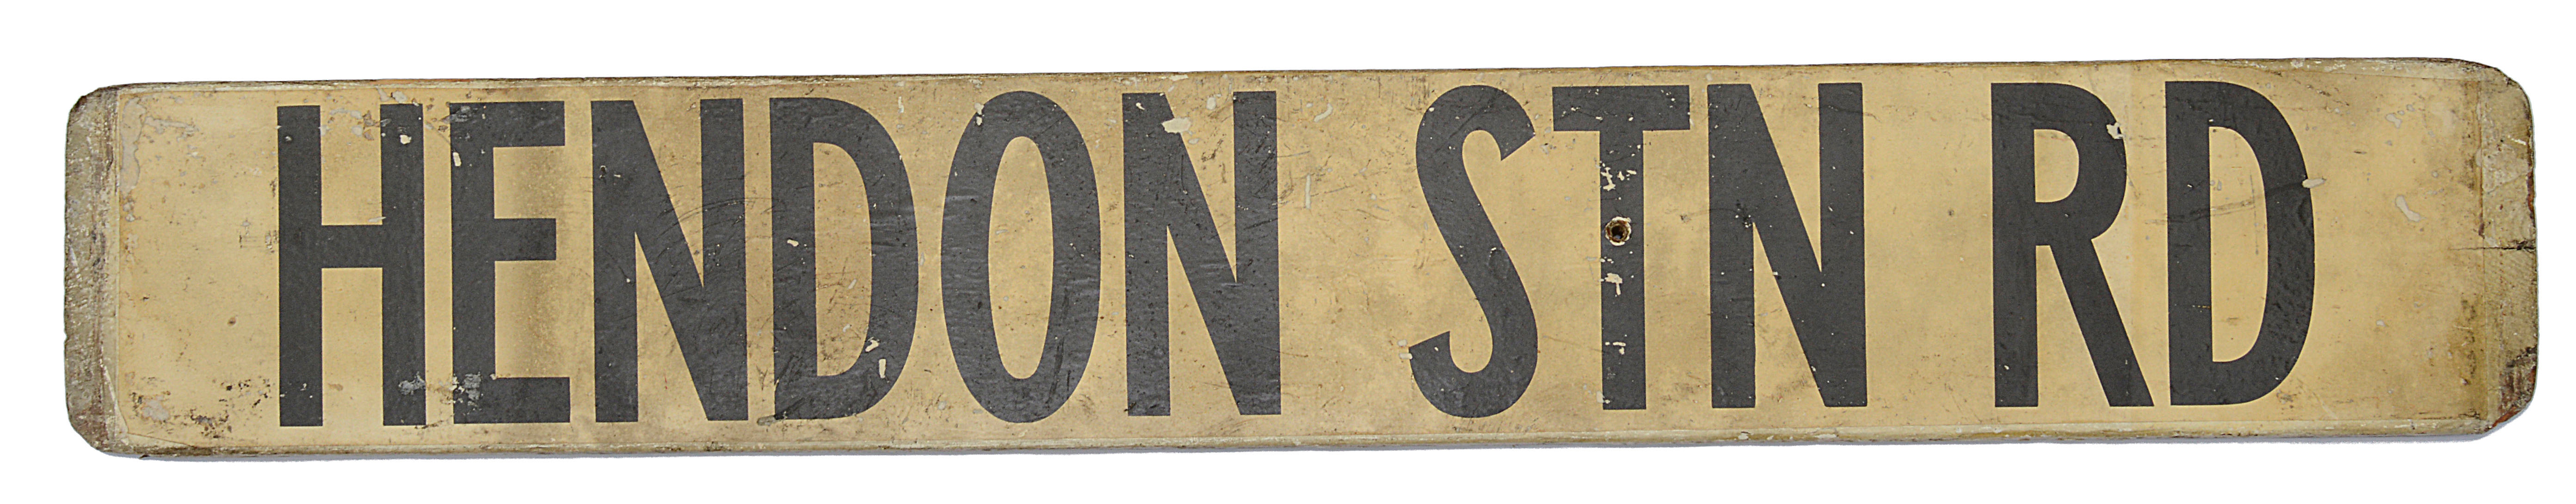 Three double sided wooden destination signs - Image 8 of 8